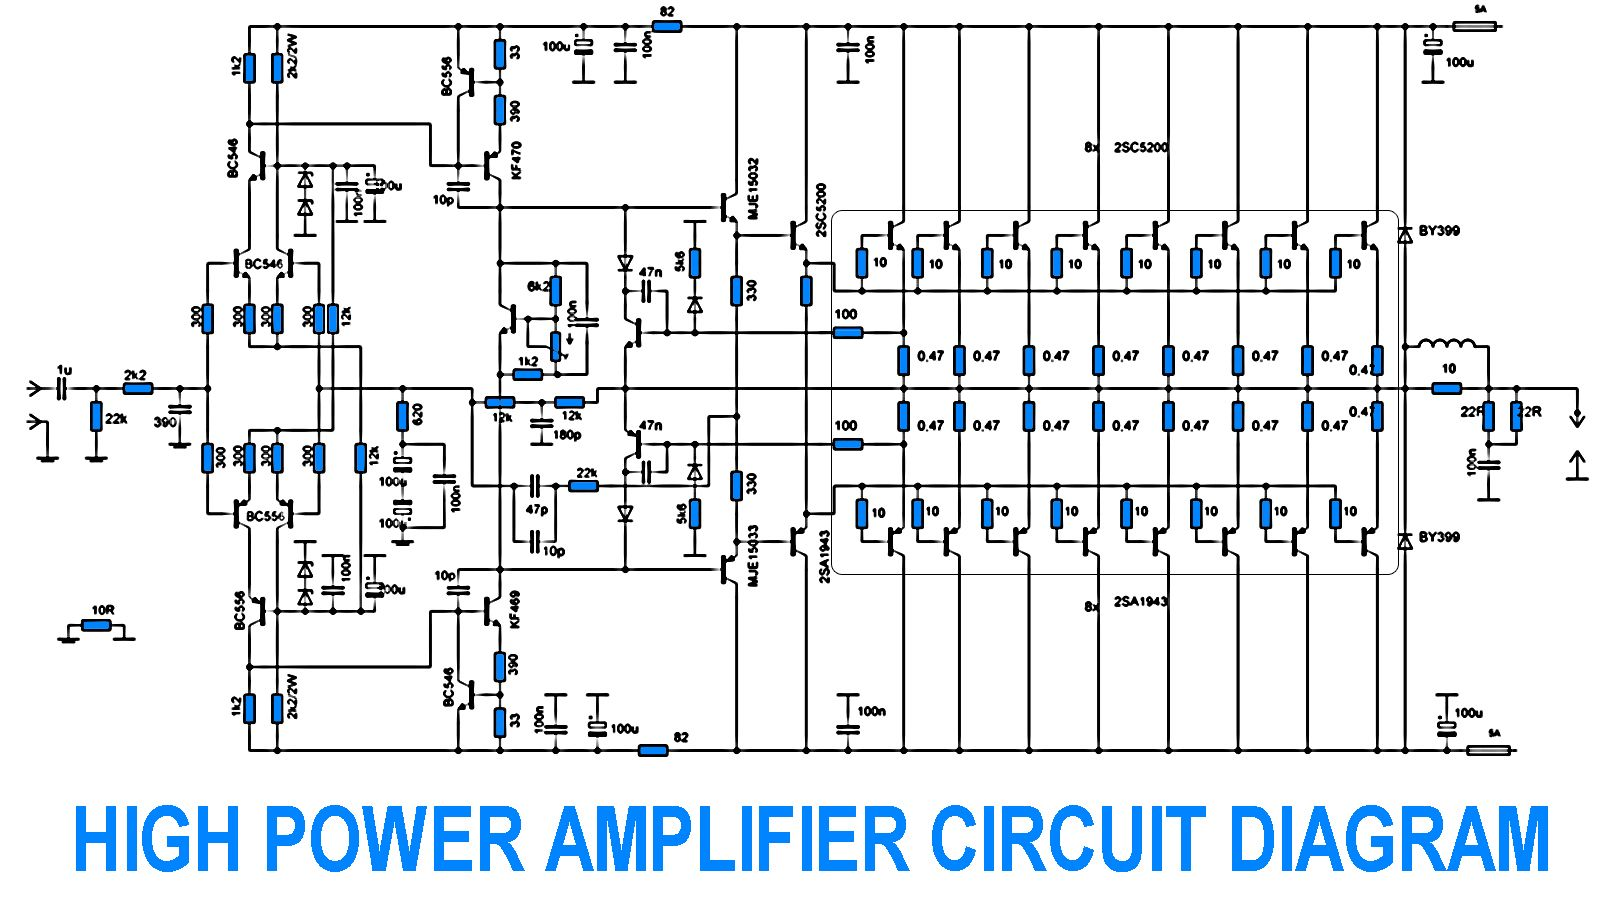 hight resolution of 700w power amplifier with 2sc5200 2sa1943